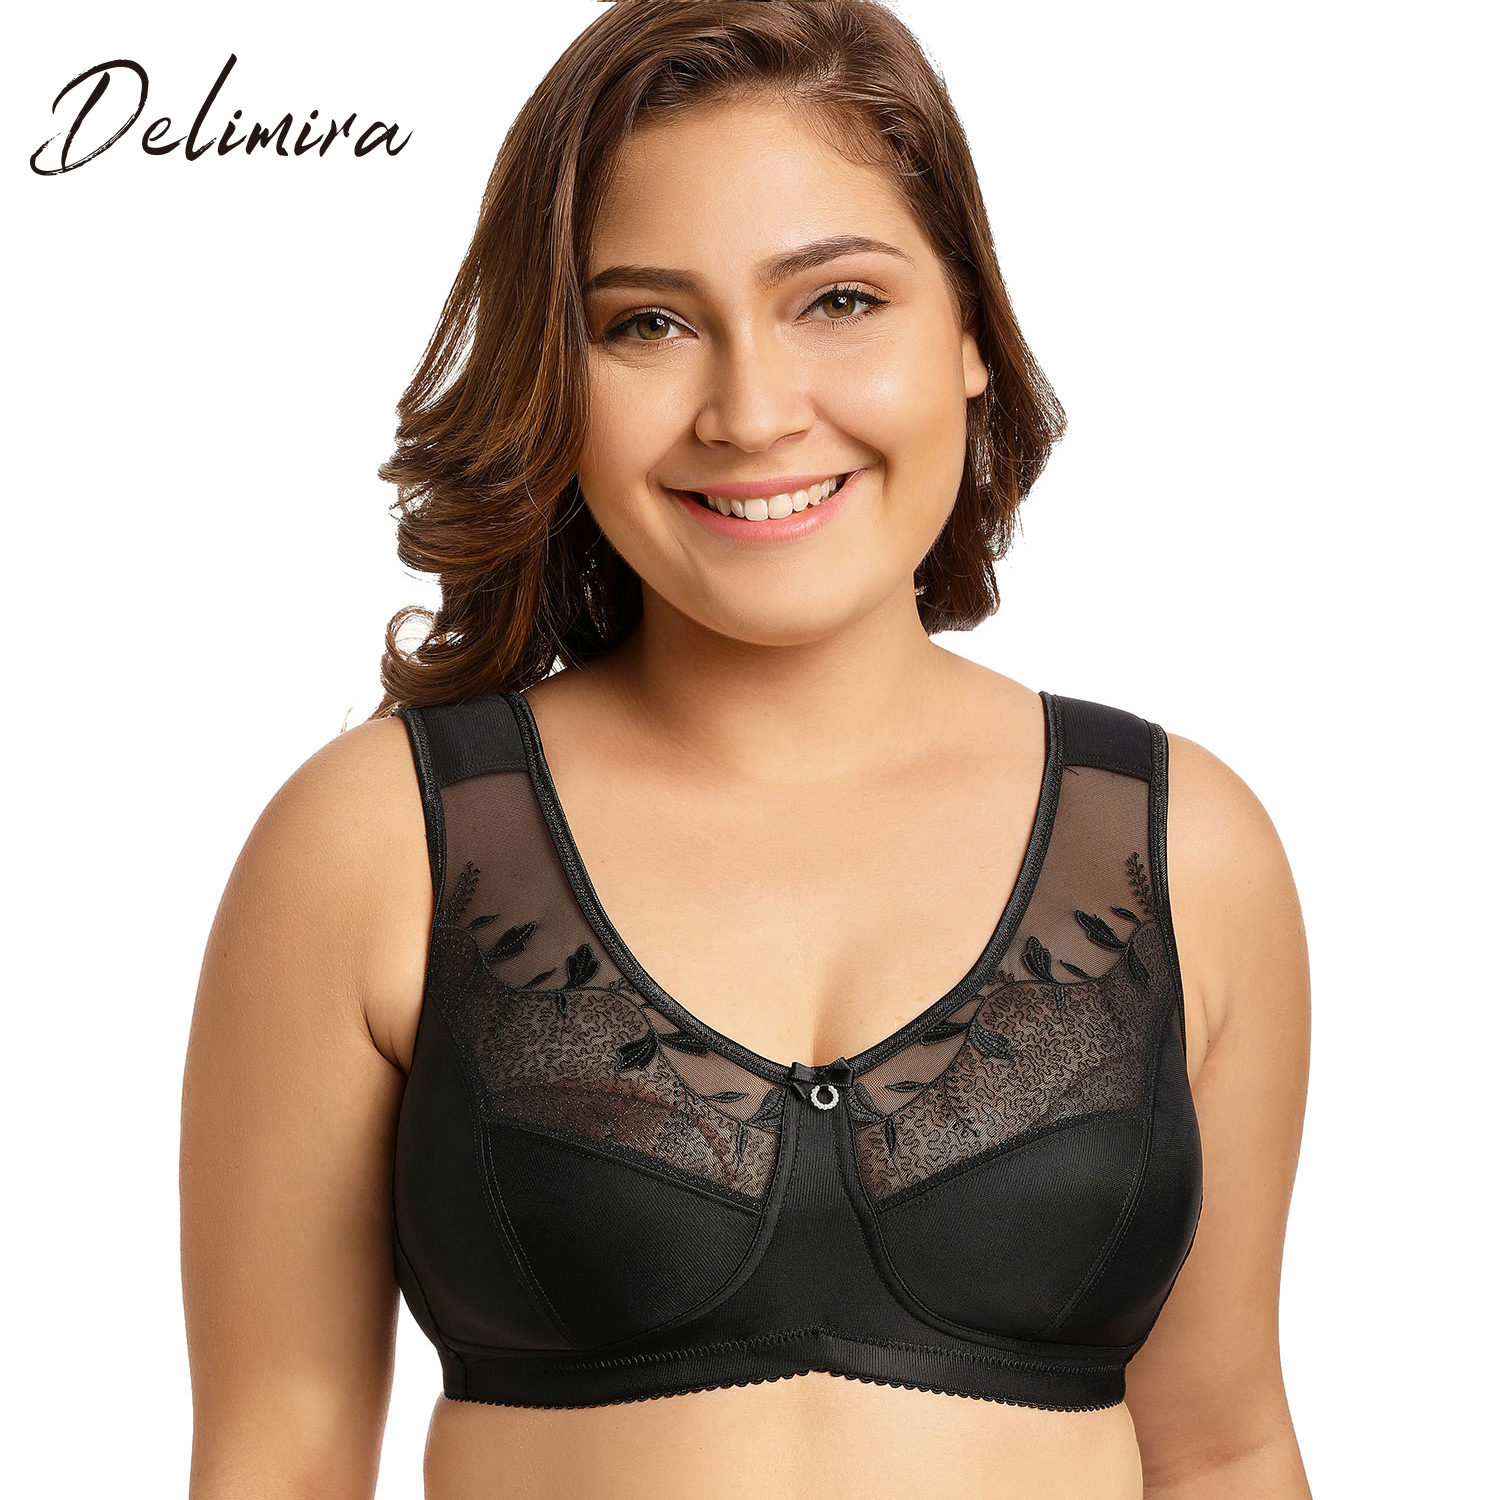 dfb80cfb94958 Delimira Women s Full Coverage Smooth Seamless Invisible Underwire ...